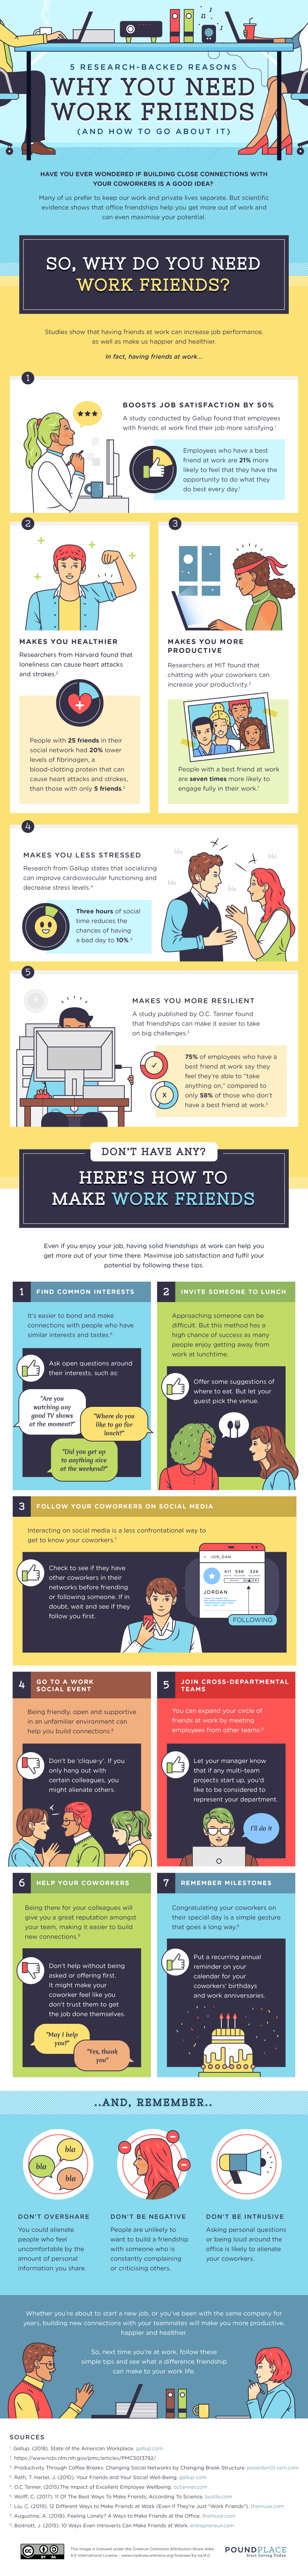 5-research-backed-reasons-why-you-need-work-friends